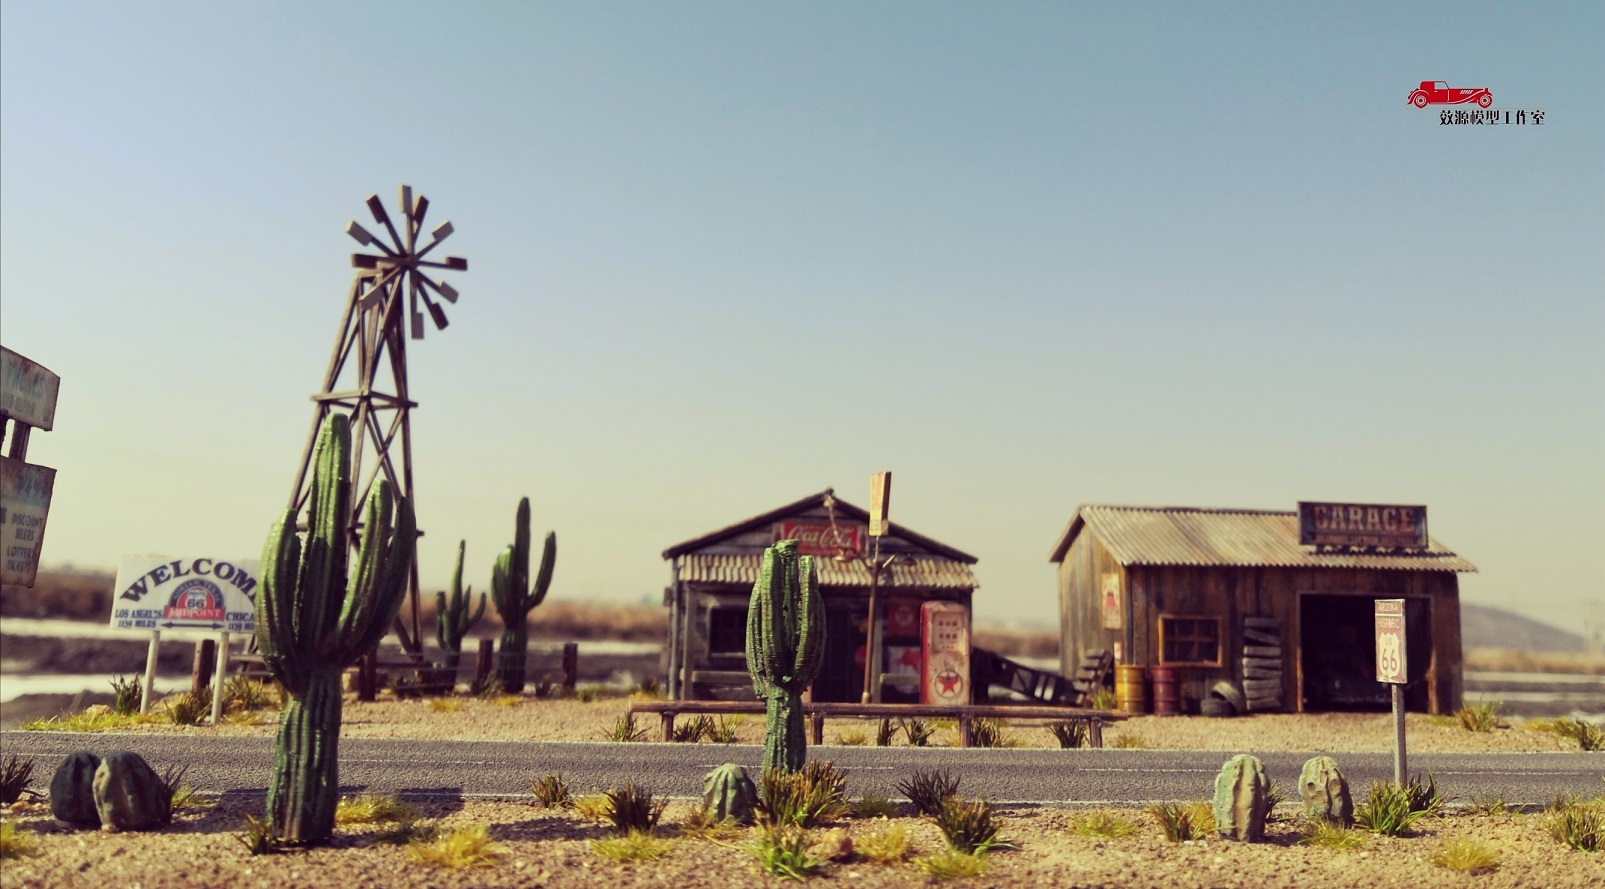 1/64 Scale Route 66 Diorama, Suitable for 1:64 Die-cast scale model cars, classic Route 66 Decor old windmill, Coca Cola, Gas station, Western style, Cactus. welcome Route 66..